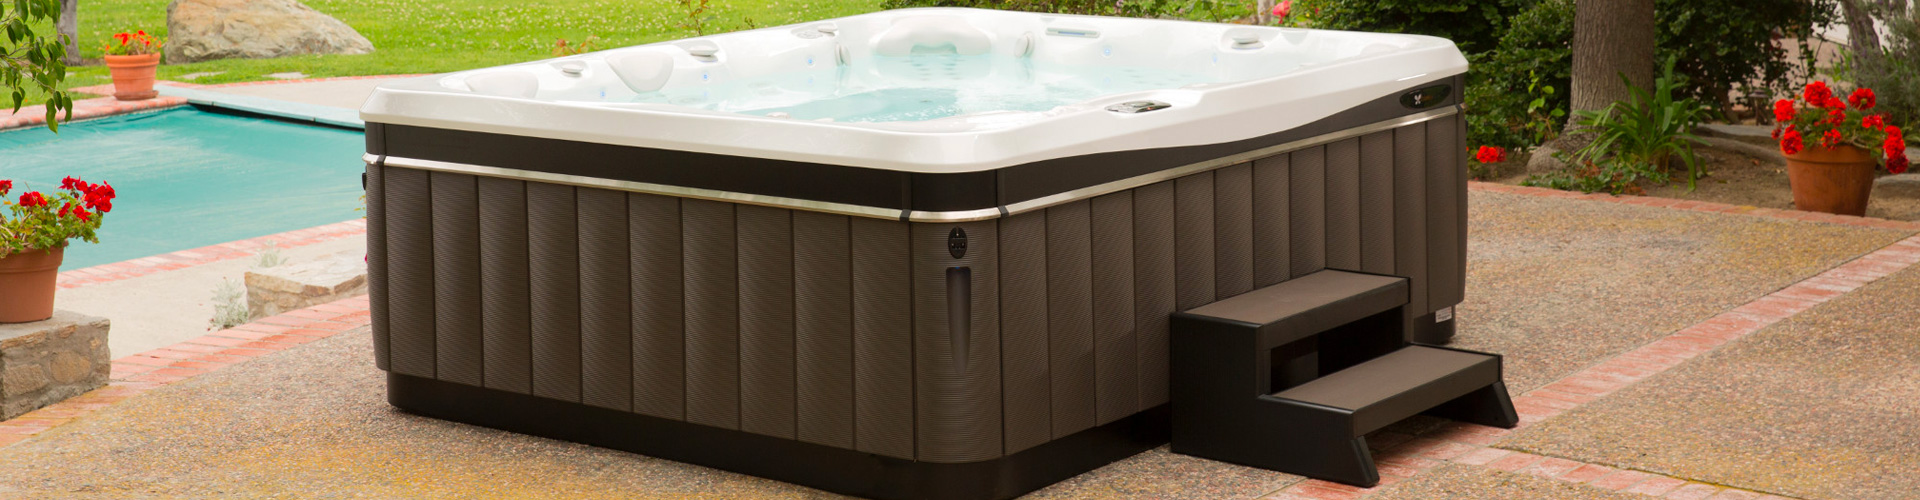 Caldera 174 Spas Steps Spa Country